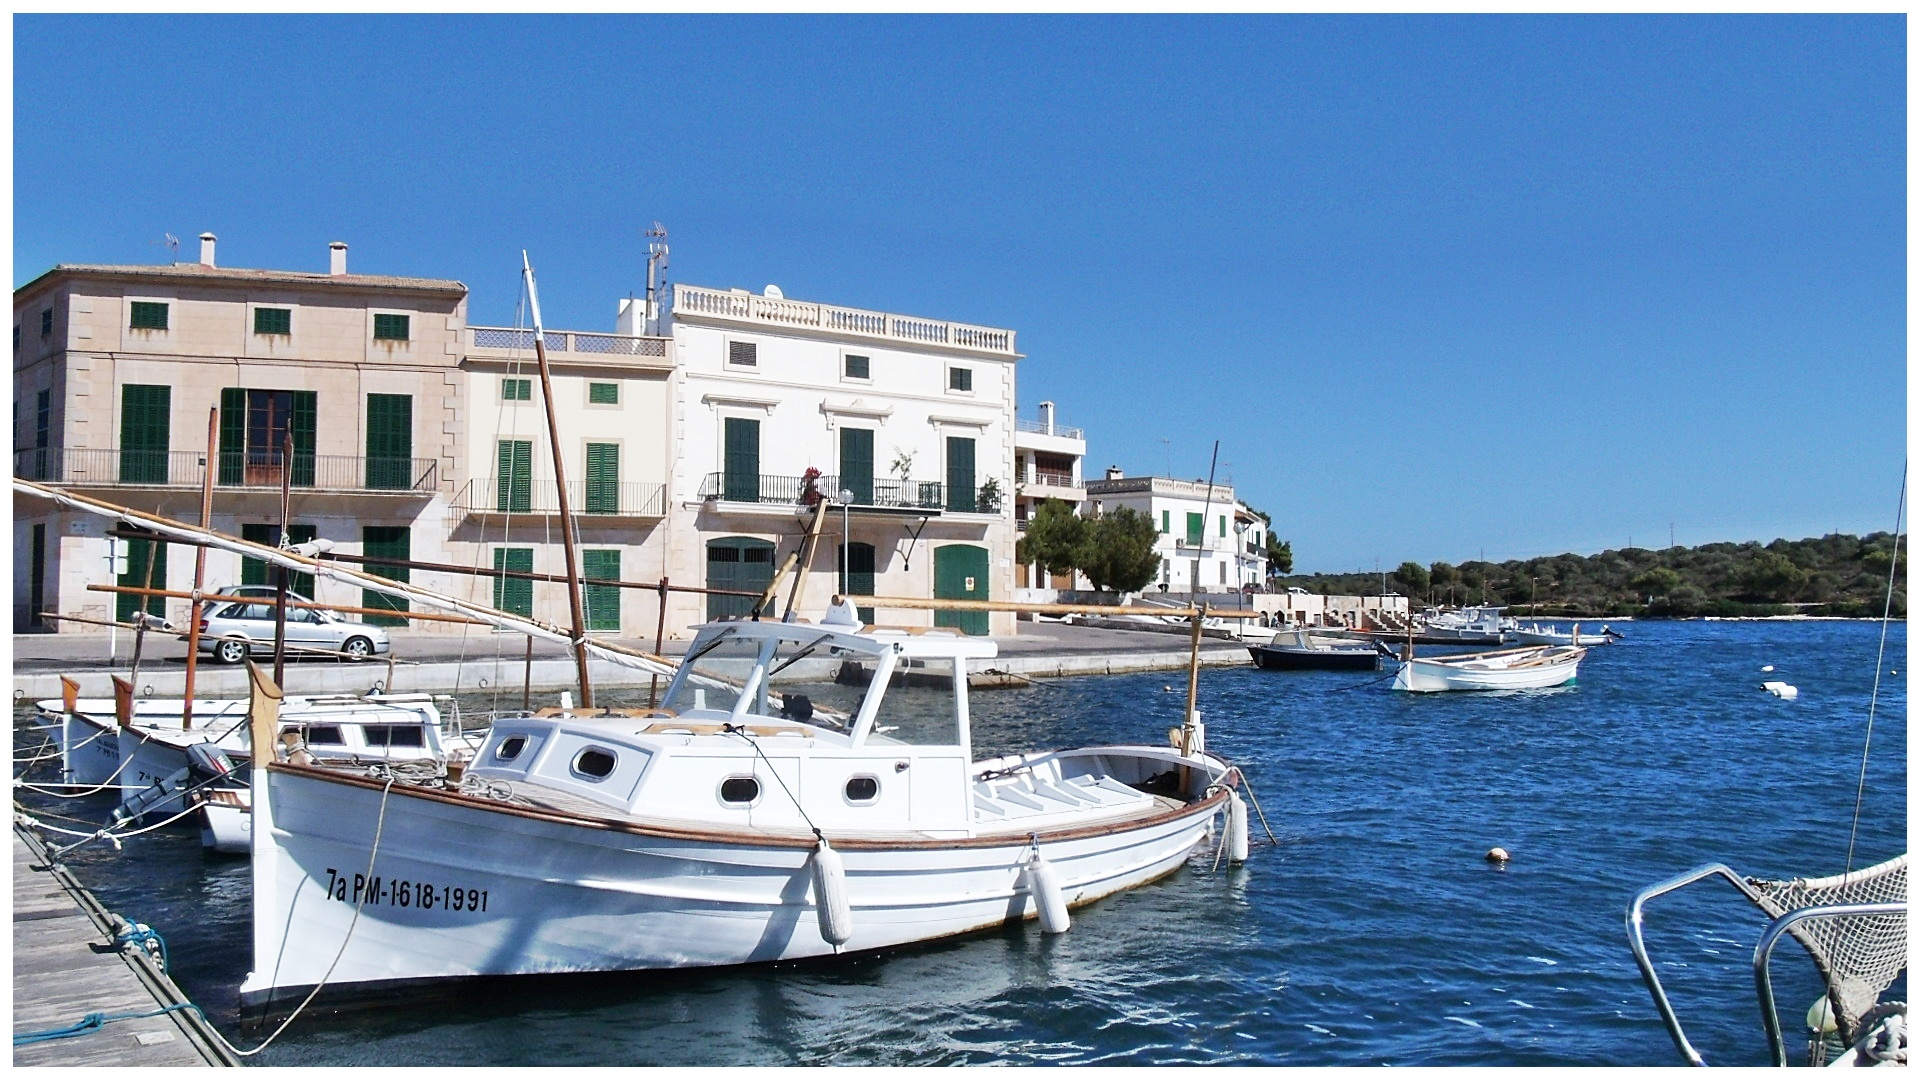 Boote in Cala Figuera